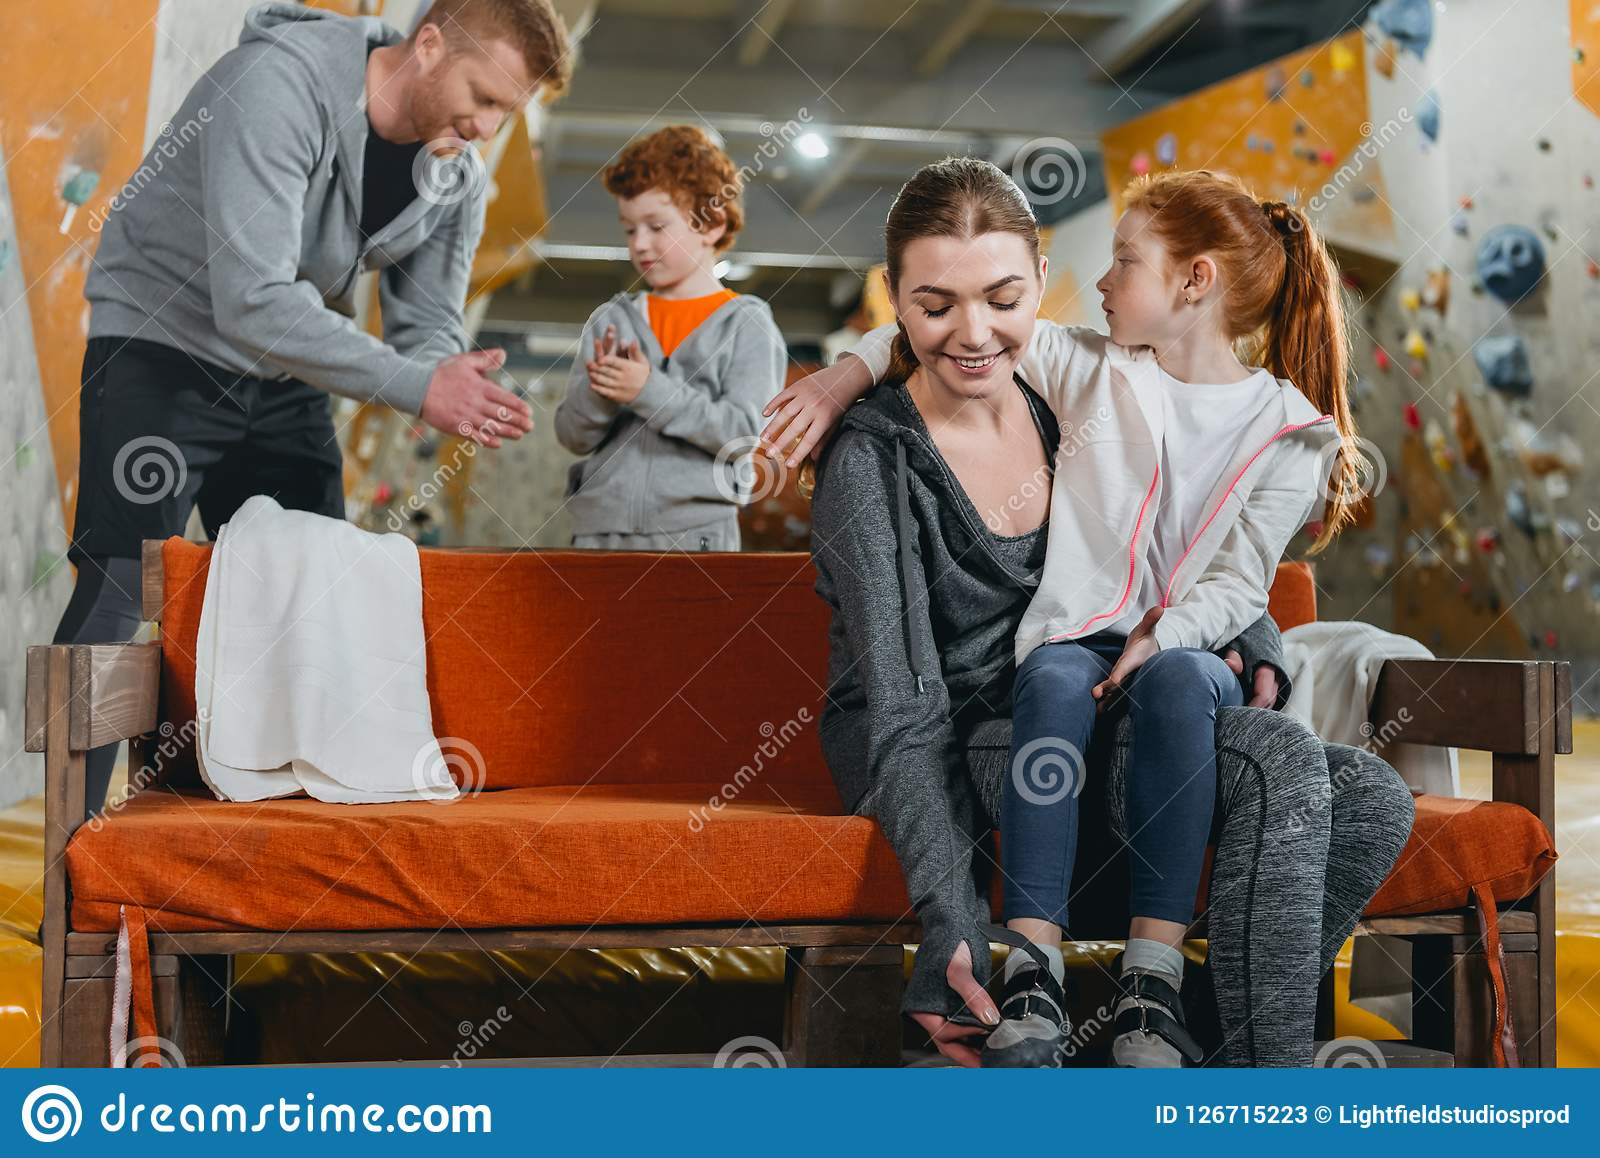 d8795da6106c A Family With Kids At Gym Changing Clothes And Preparing To Climb ...